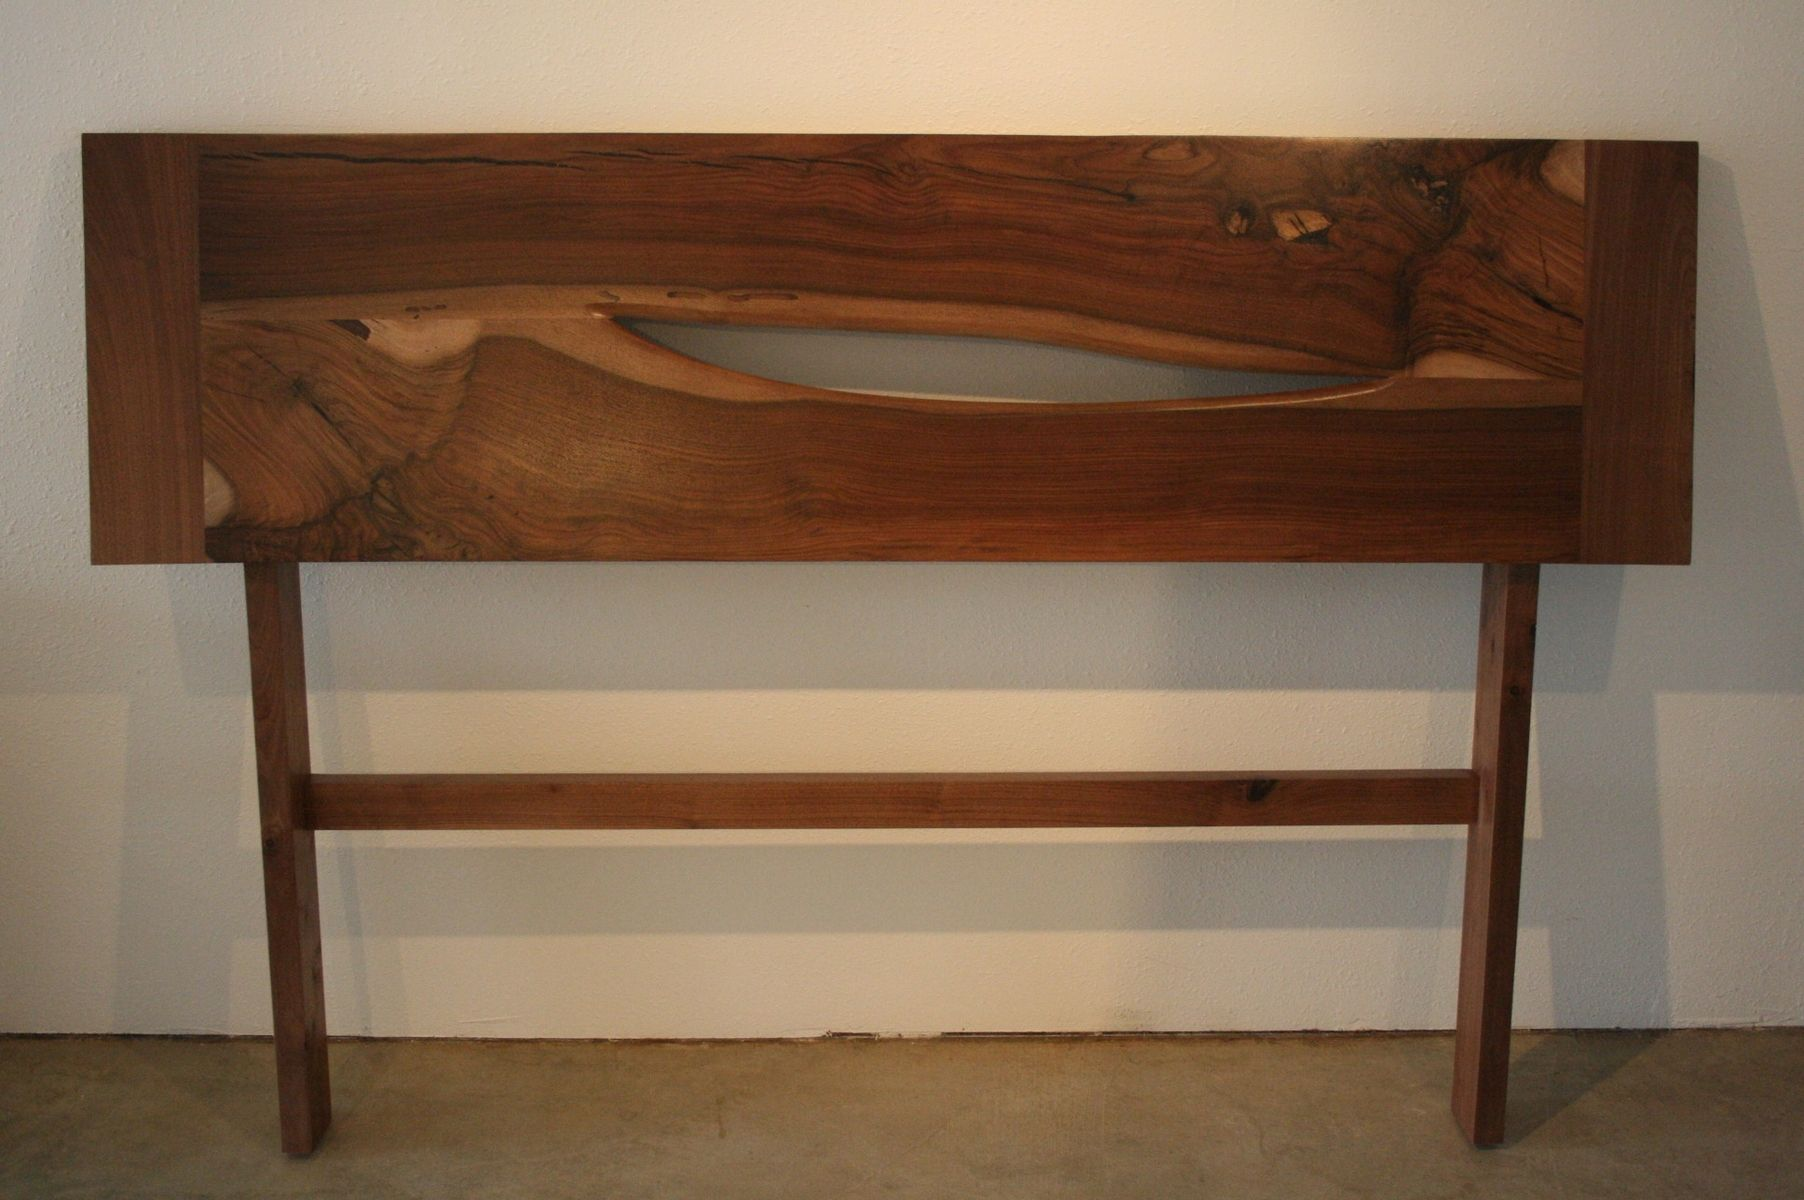 Custom Made Beds Image Gallery: Hand Made Cambria Headboard By Brooks Gallery